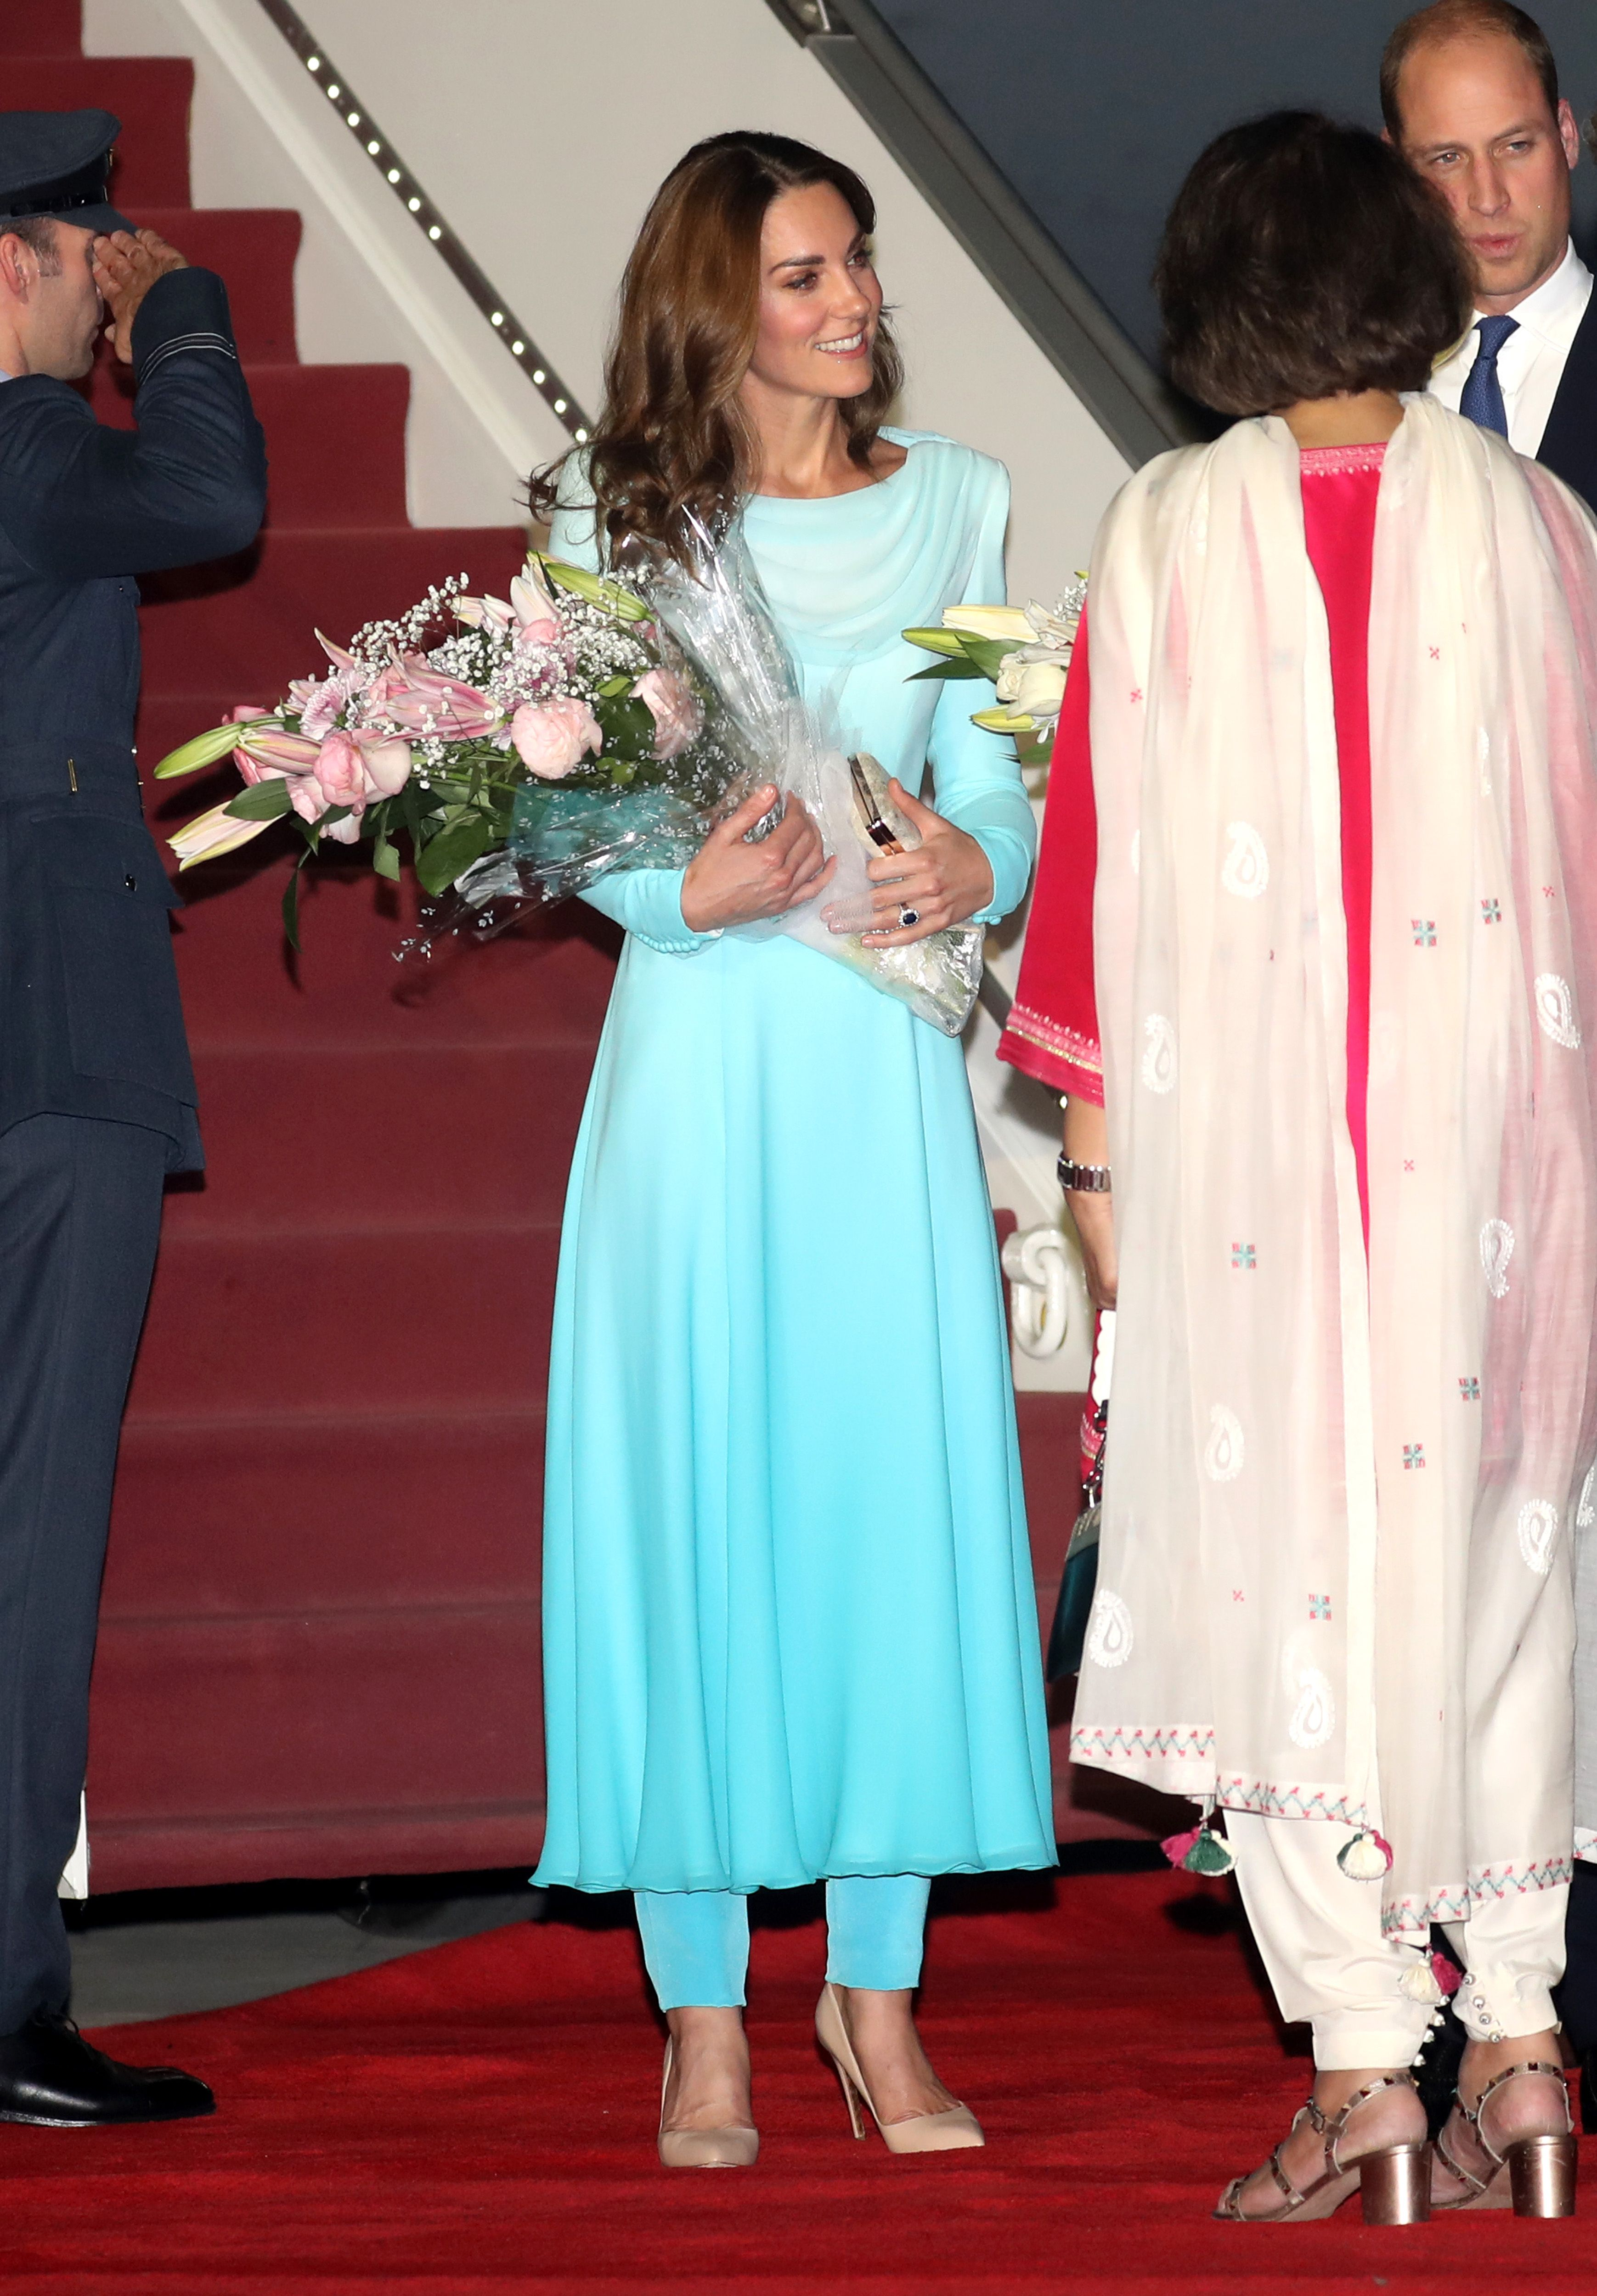 The Duchess of Cambridge channeled Princess Diana as she landed in Pakistan